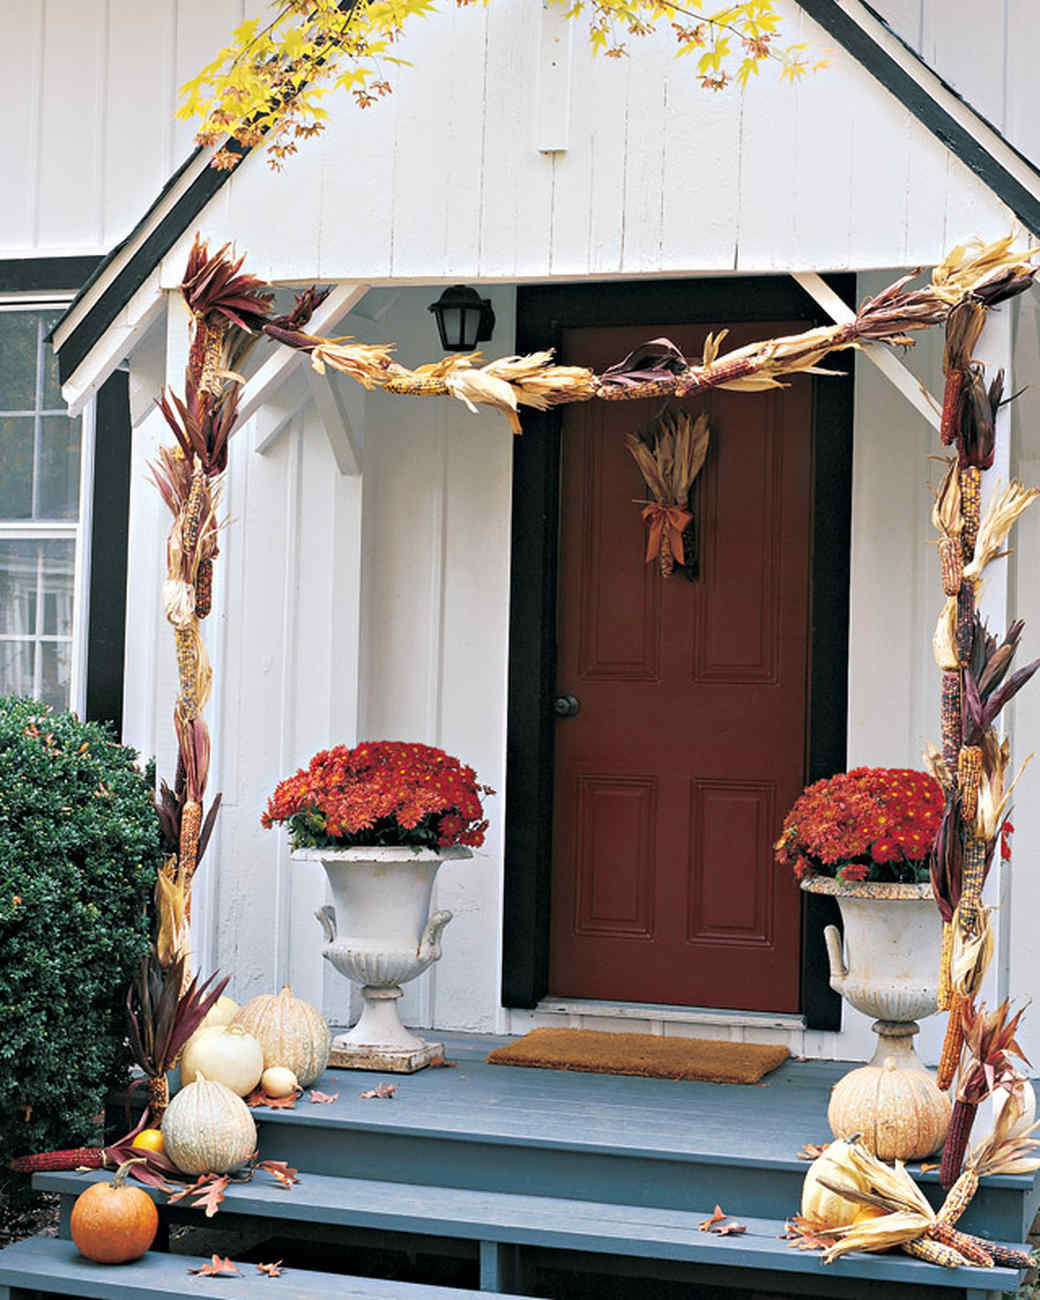 Small Event Decor: Fall Harvest Decorating